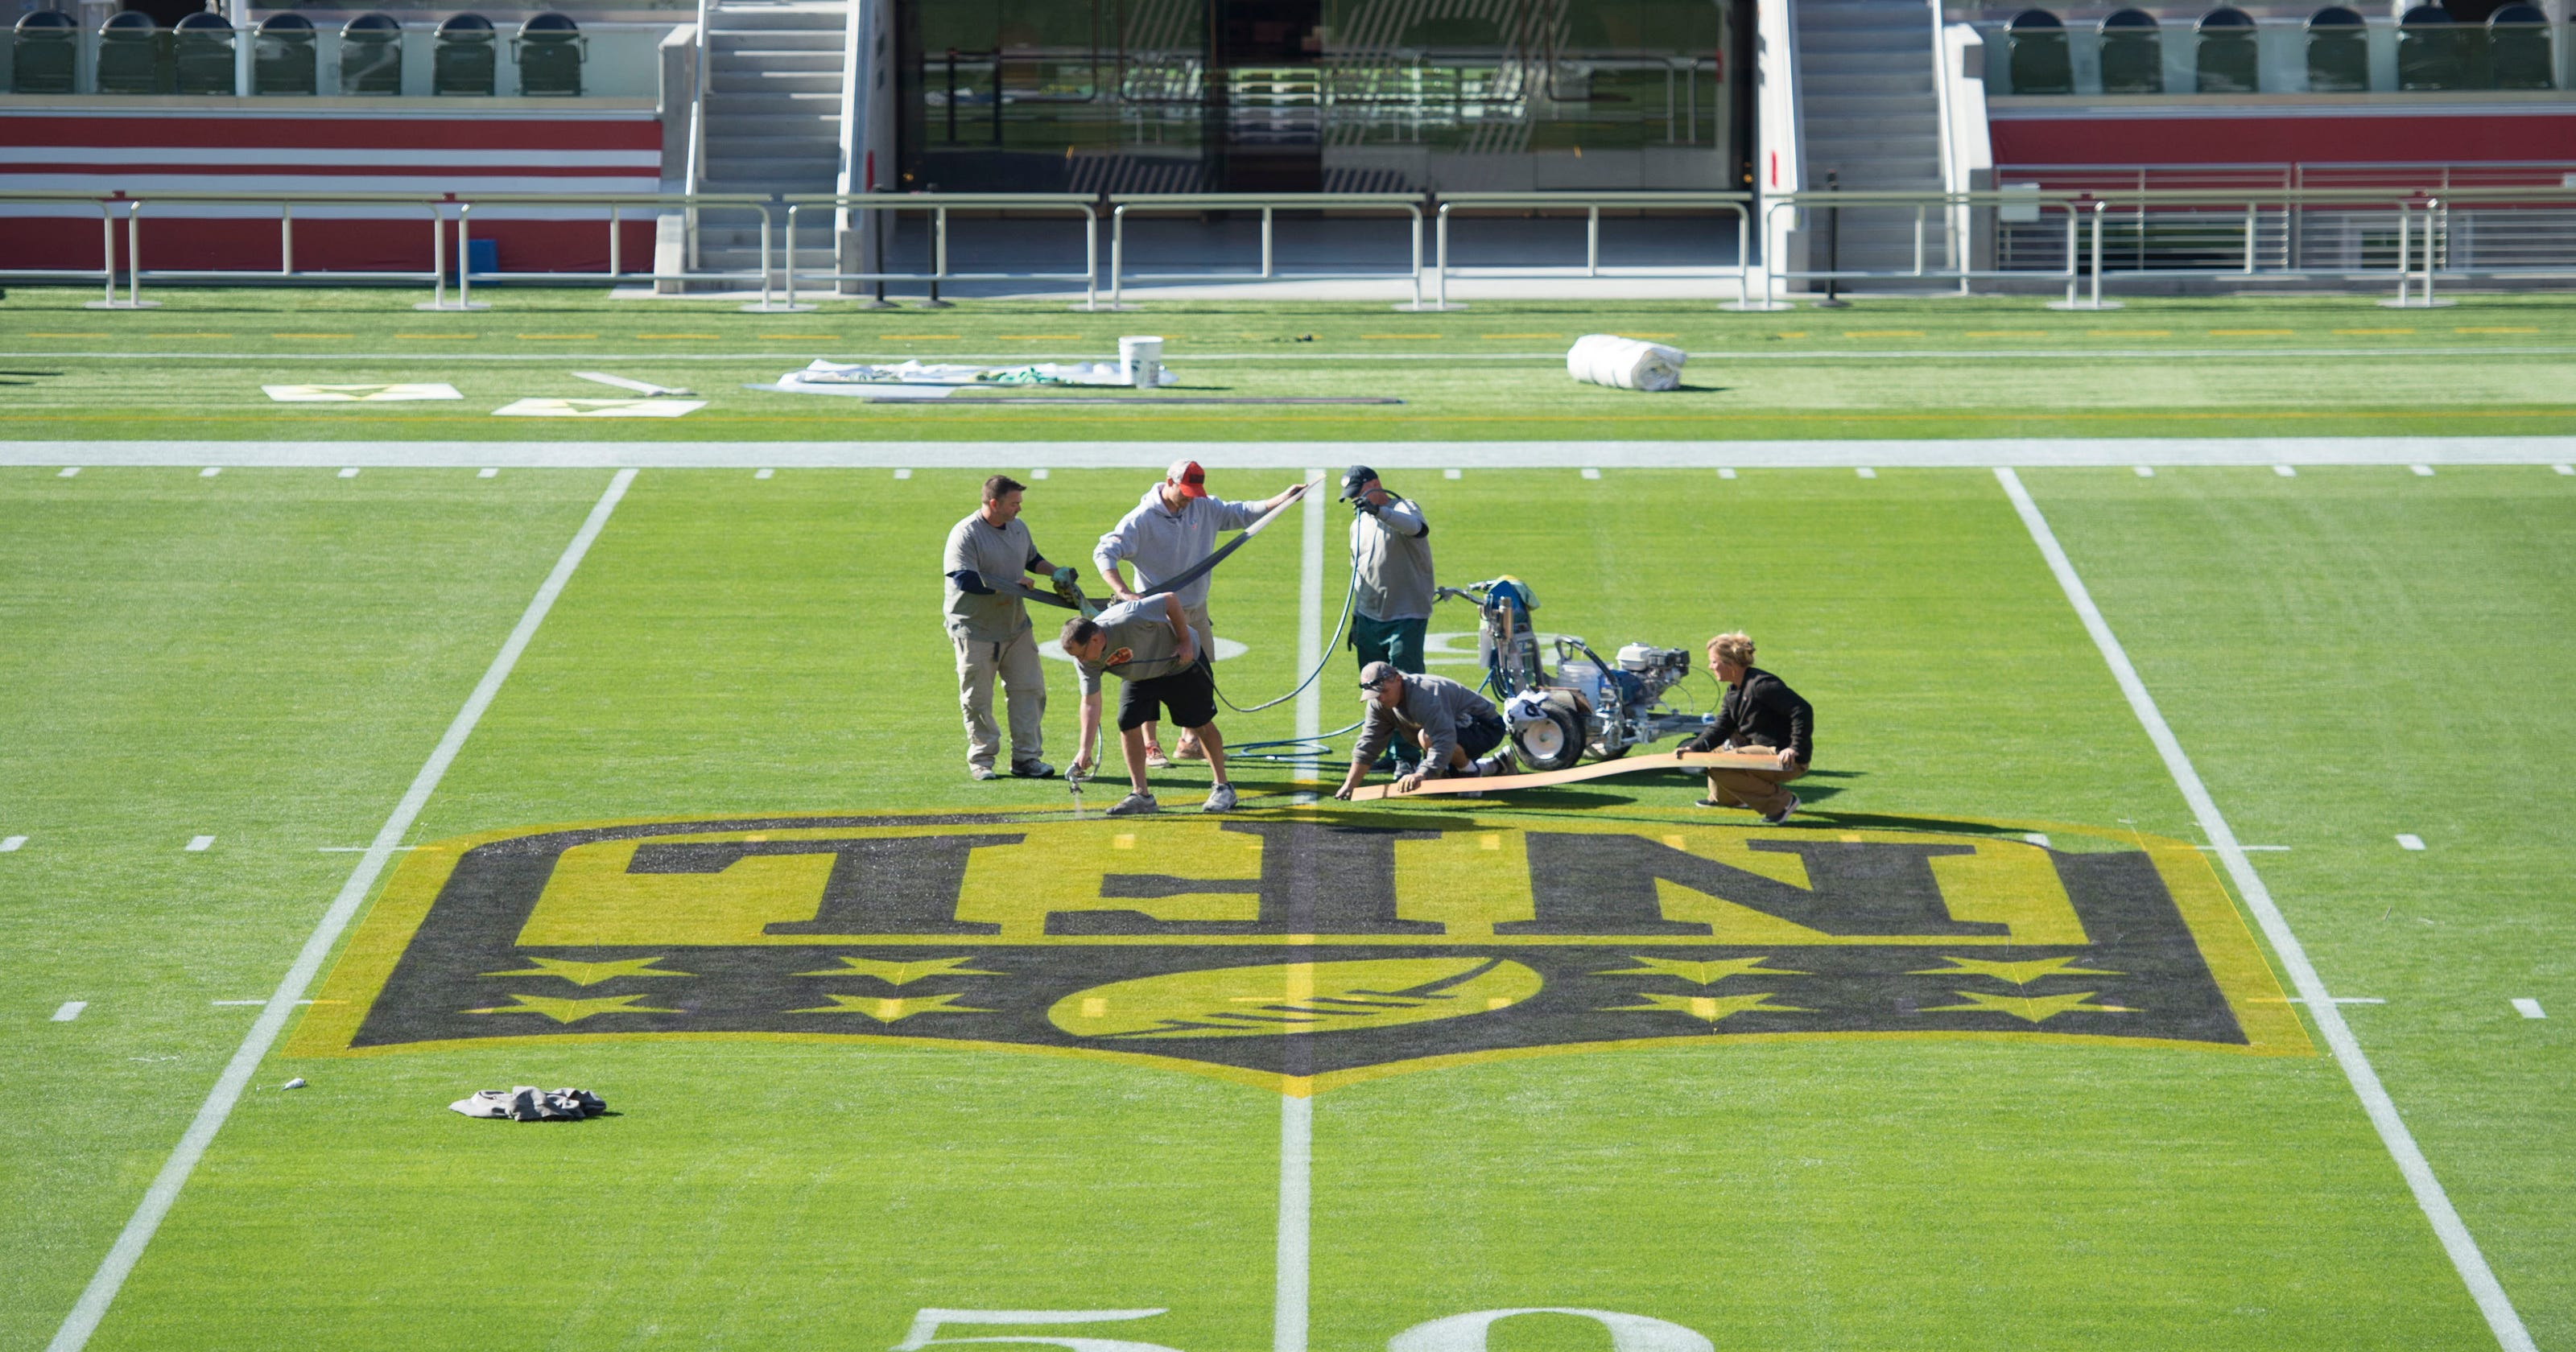 Super Bowl 50 turf receives top treatment before game 75009470f